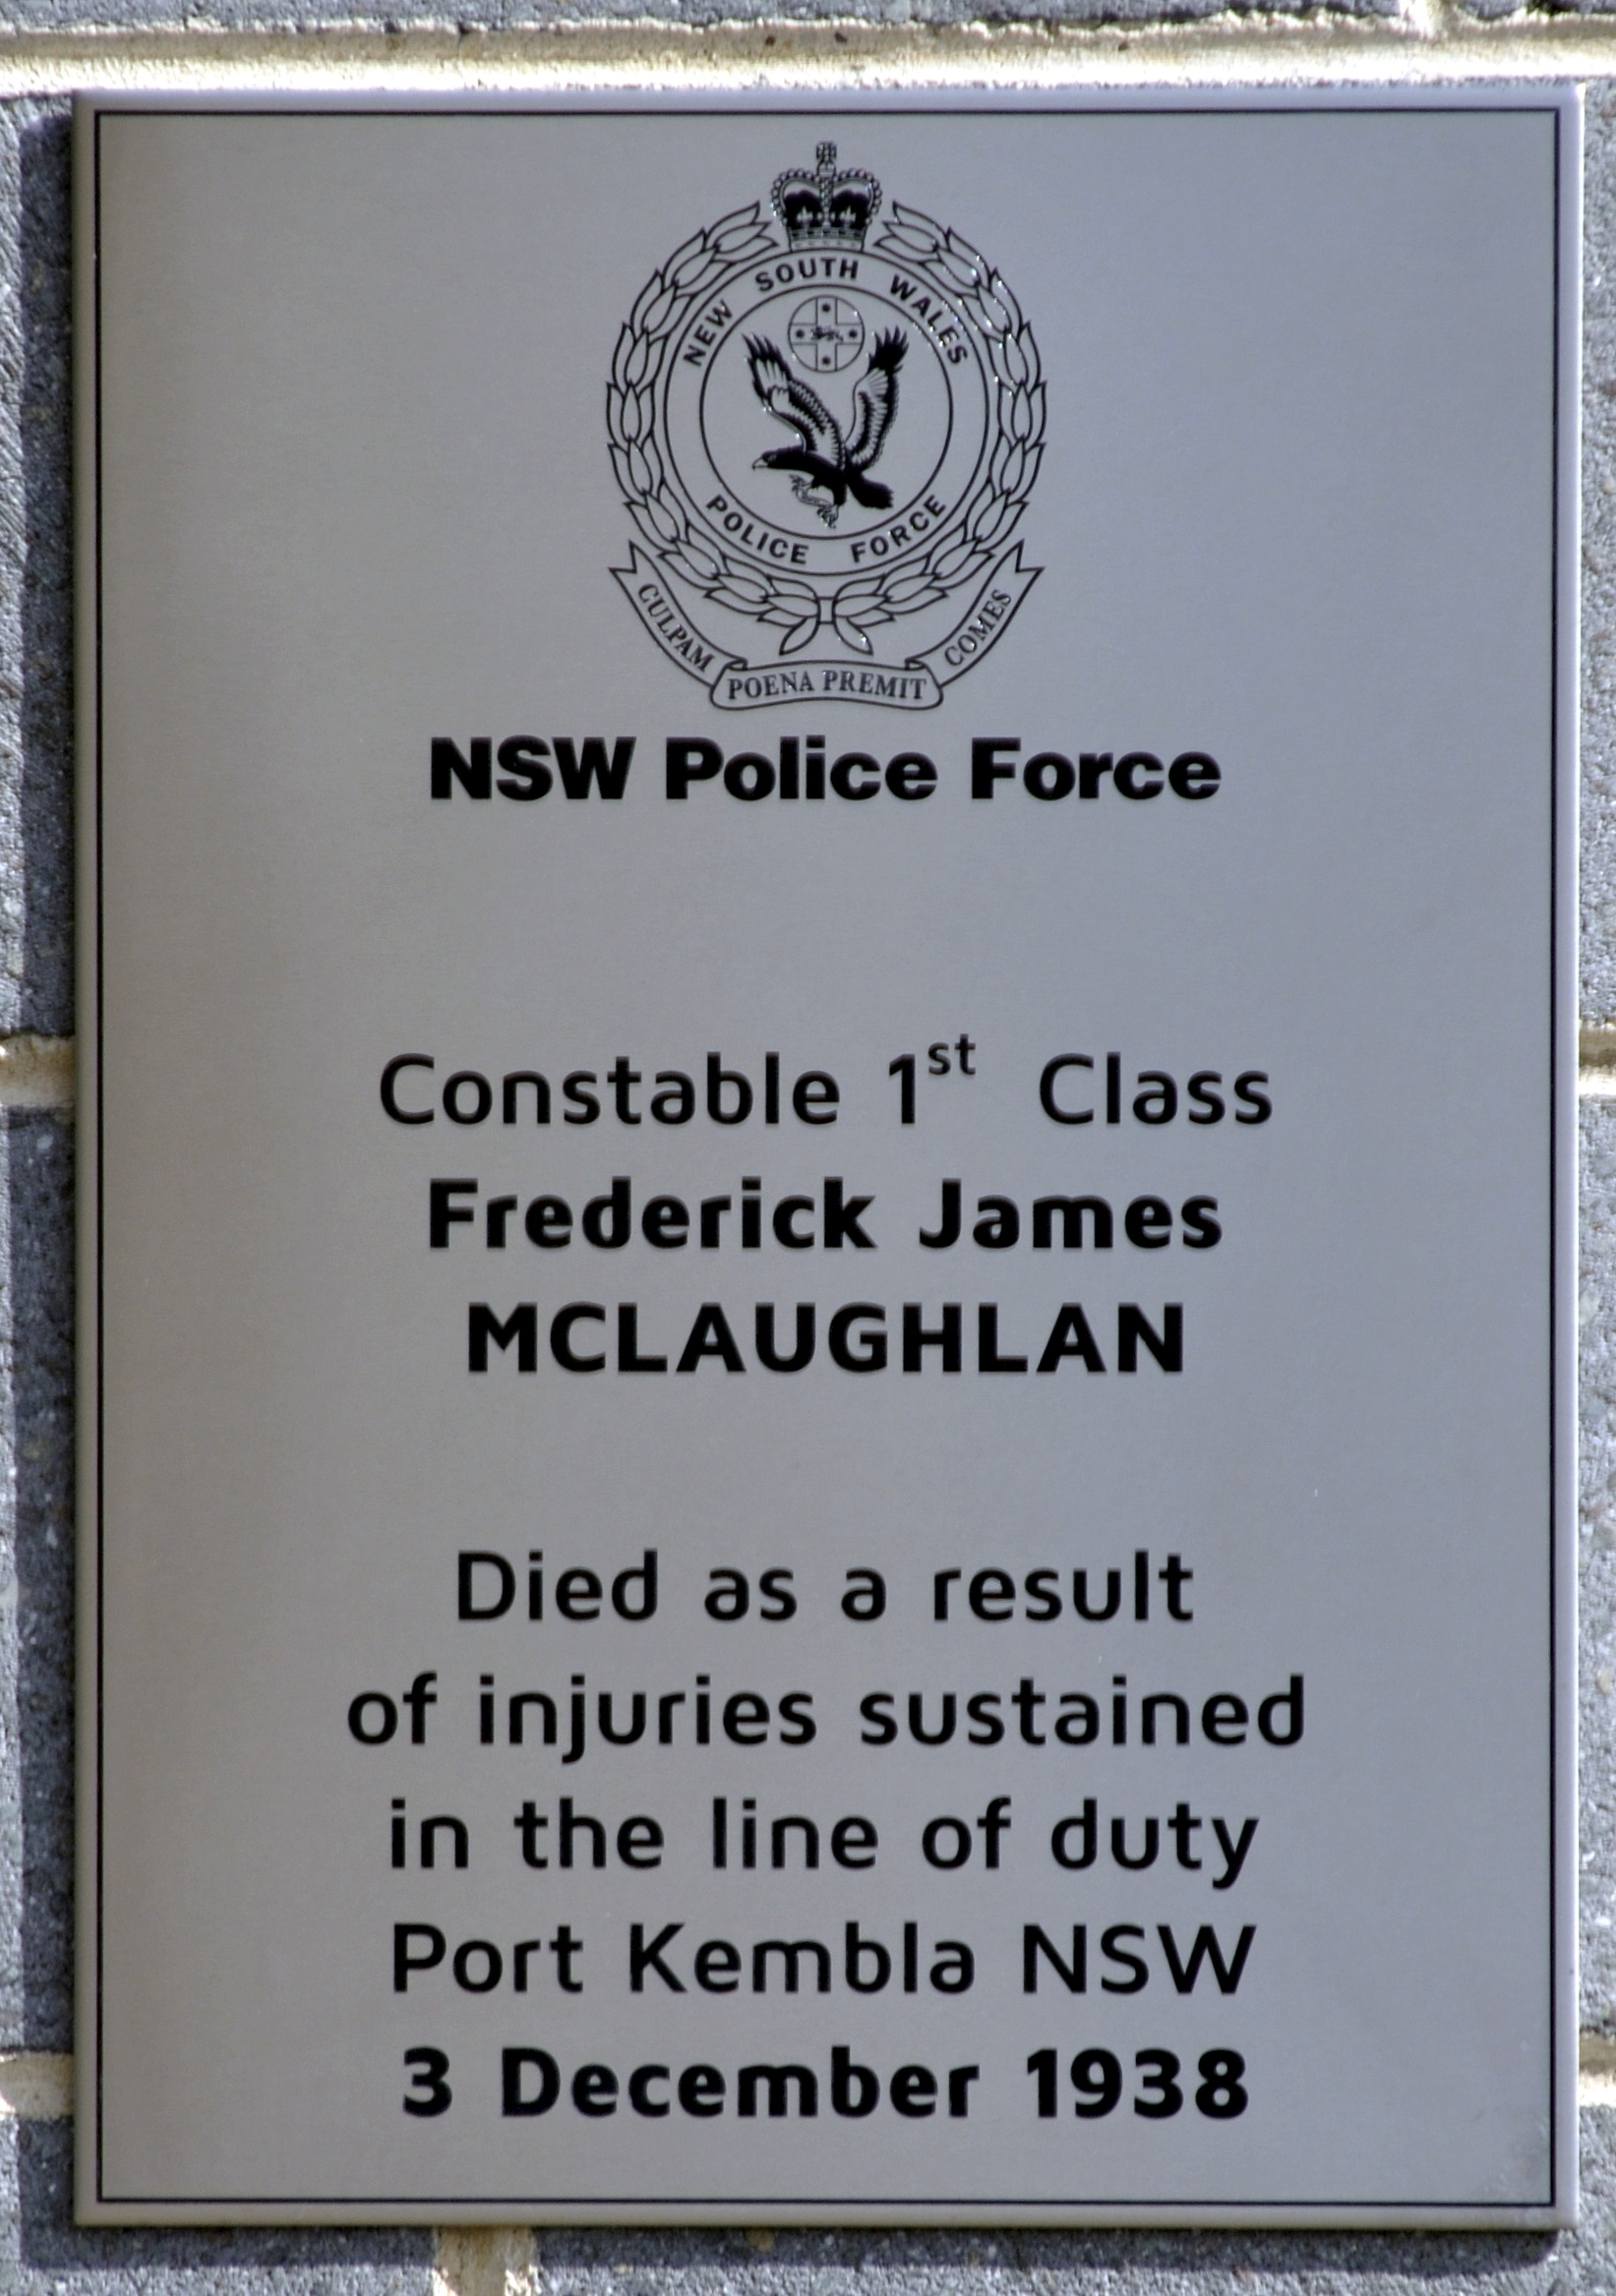 THURSDAY 4 SEPTEMBER 2014<br /> Located on the front wall to Oak Flats Police Station. NSW Police Force Constable 1st Class Frederick James McLAUGHLAN. Died as a result of injuries sustained in the line of duty, Port Kembla, NSW. 3 December 1938.